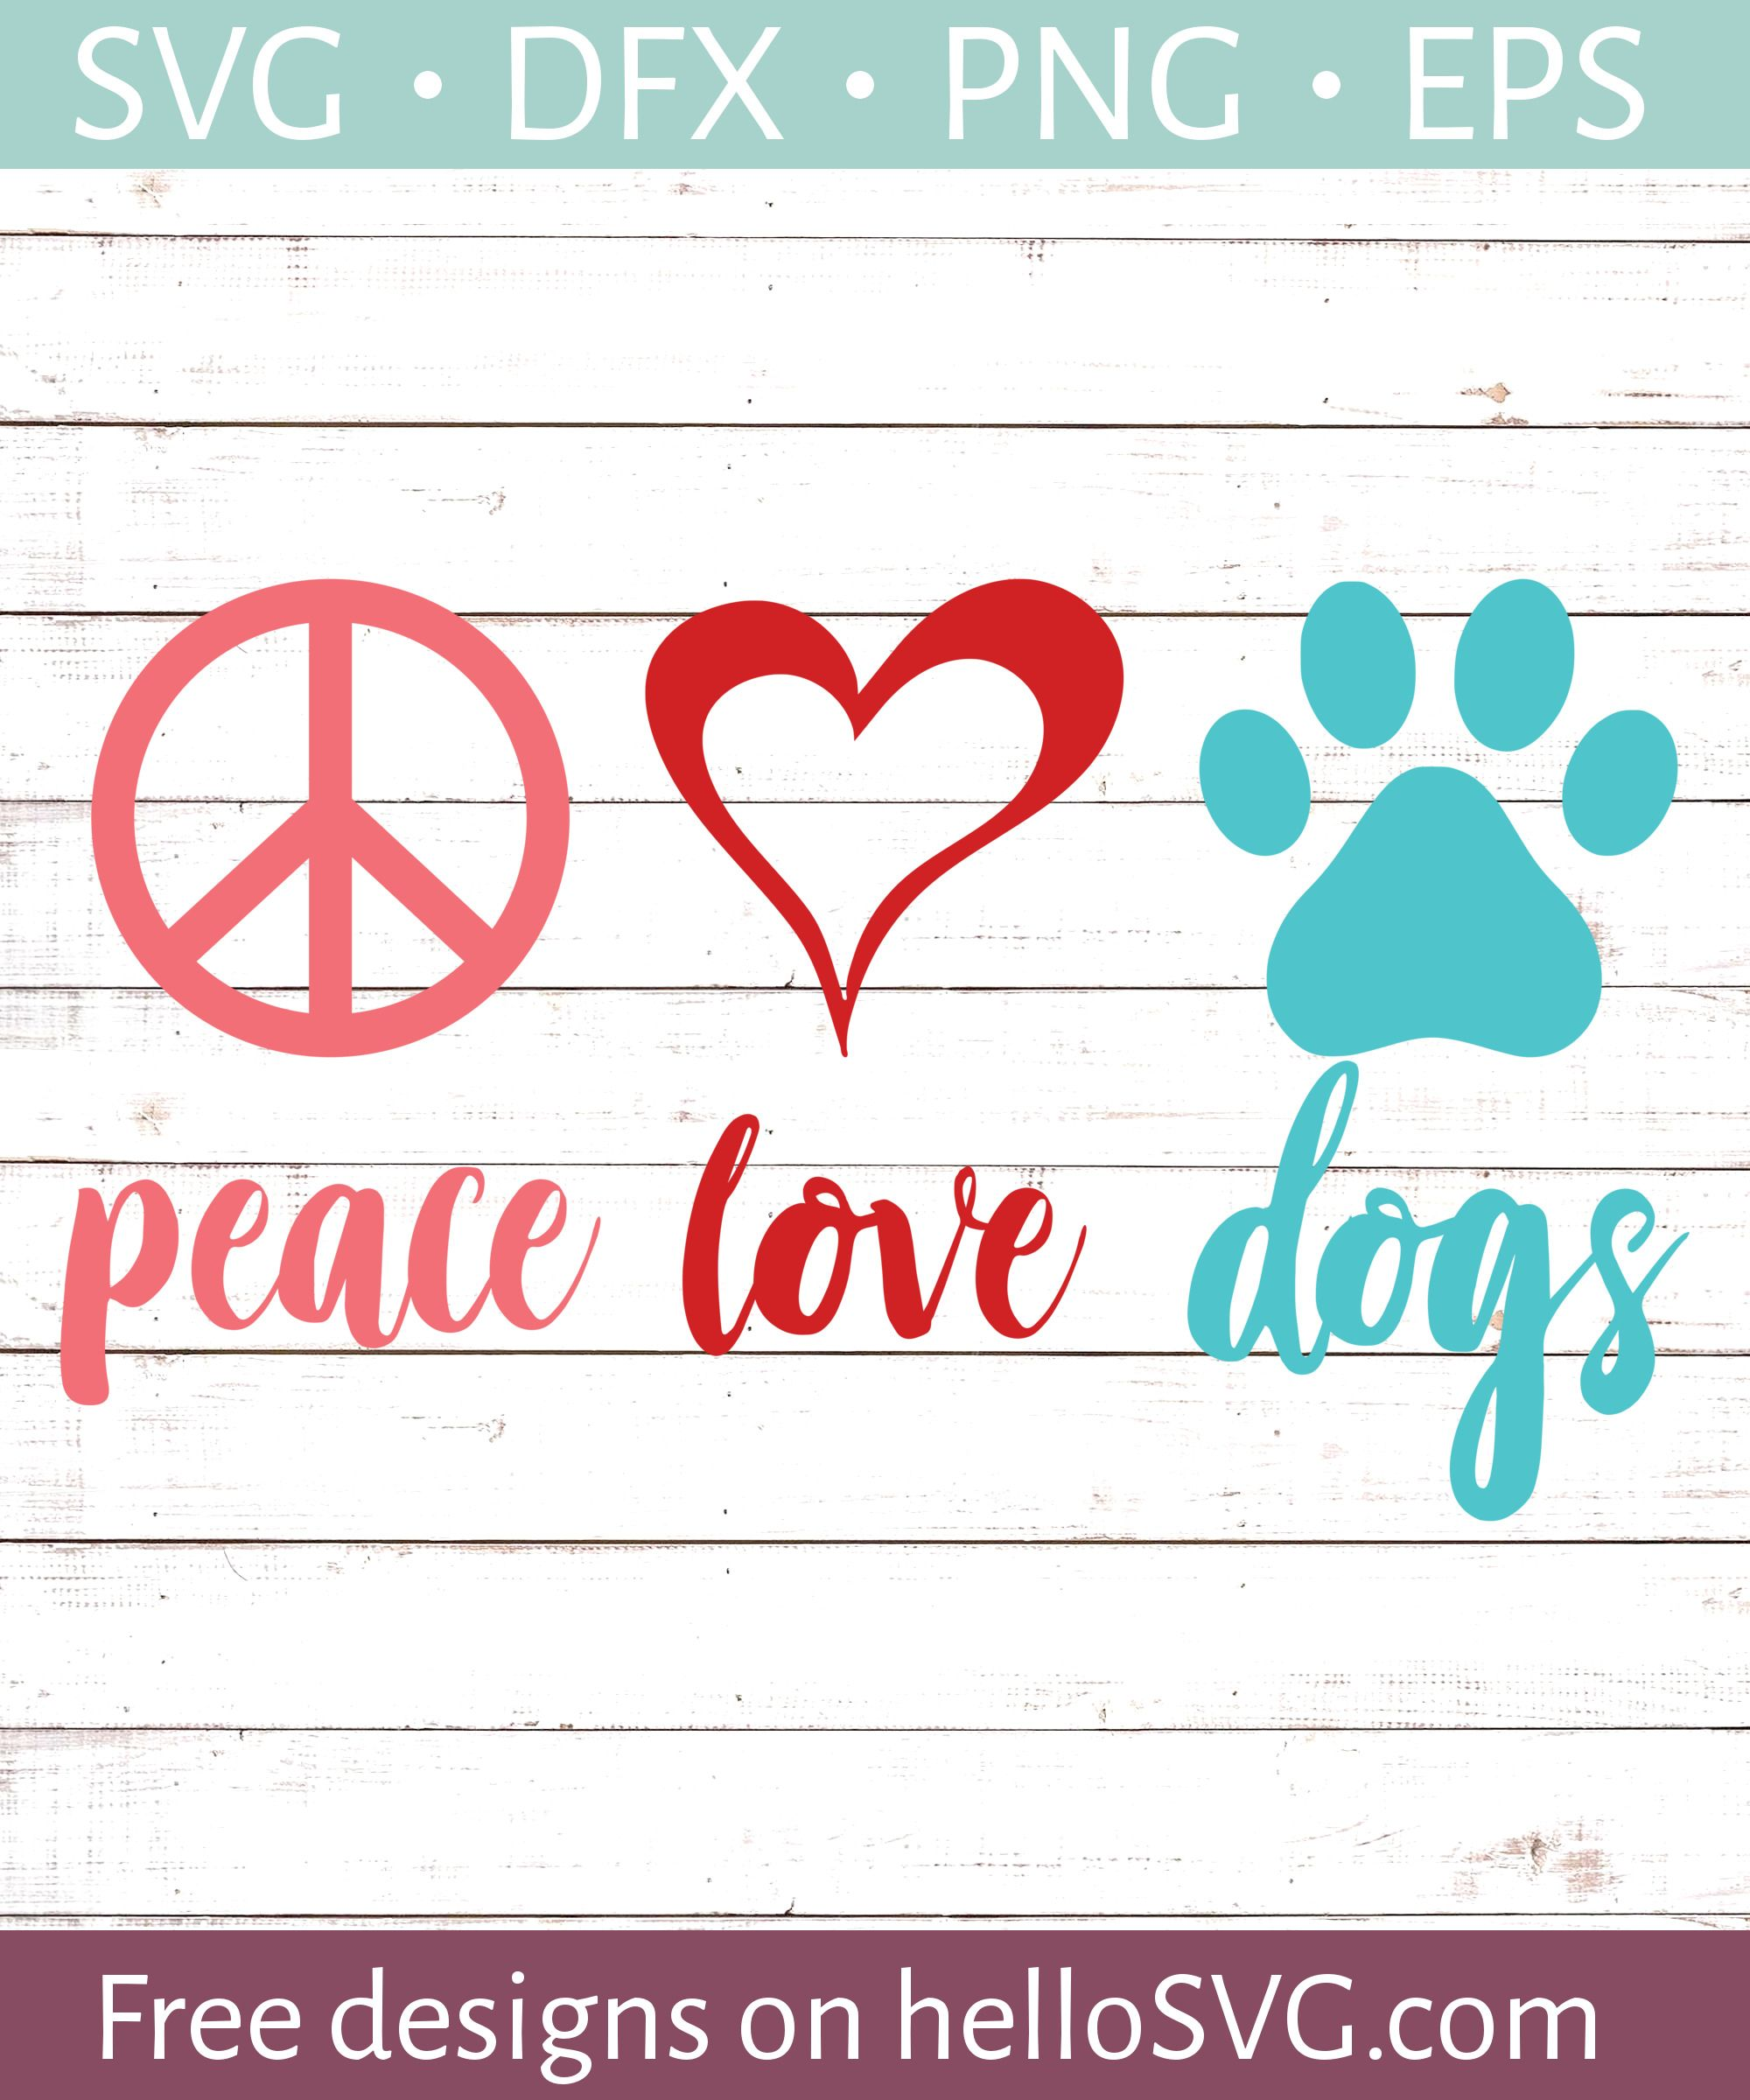 Download Pin by Beth Betts Mallory on Cricut in 2020   Peace love ...